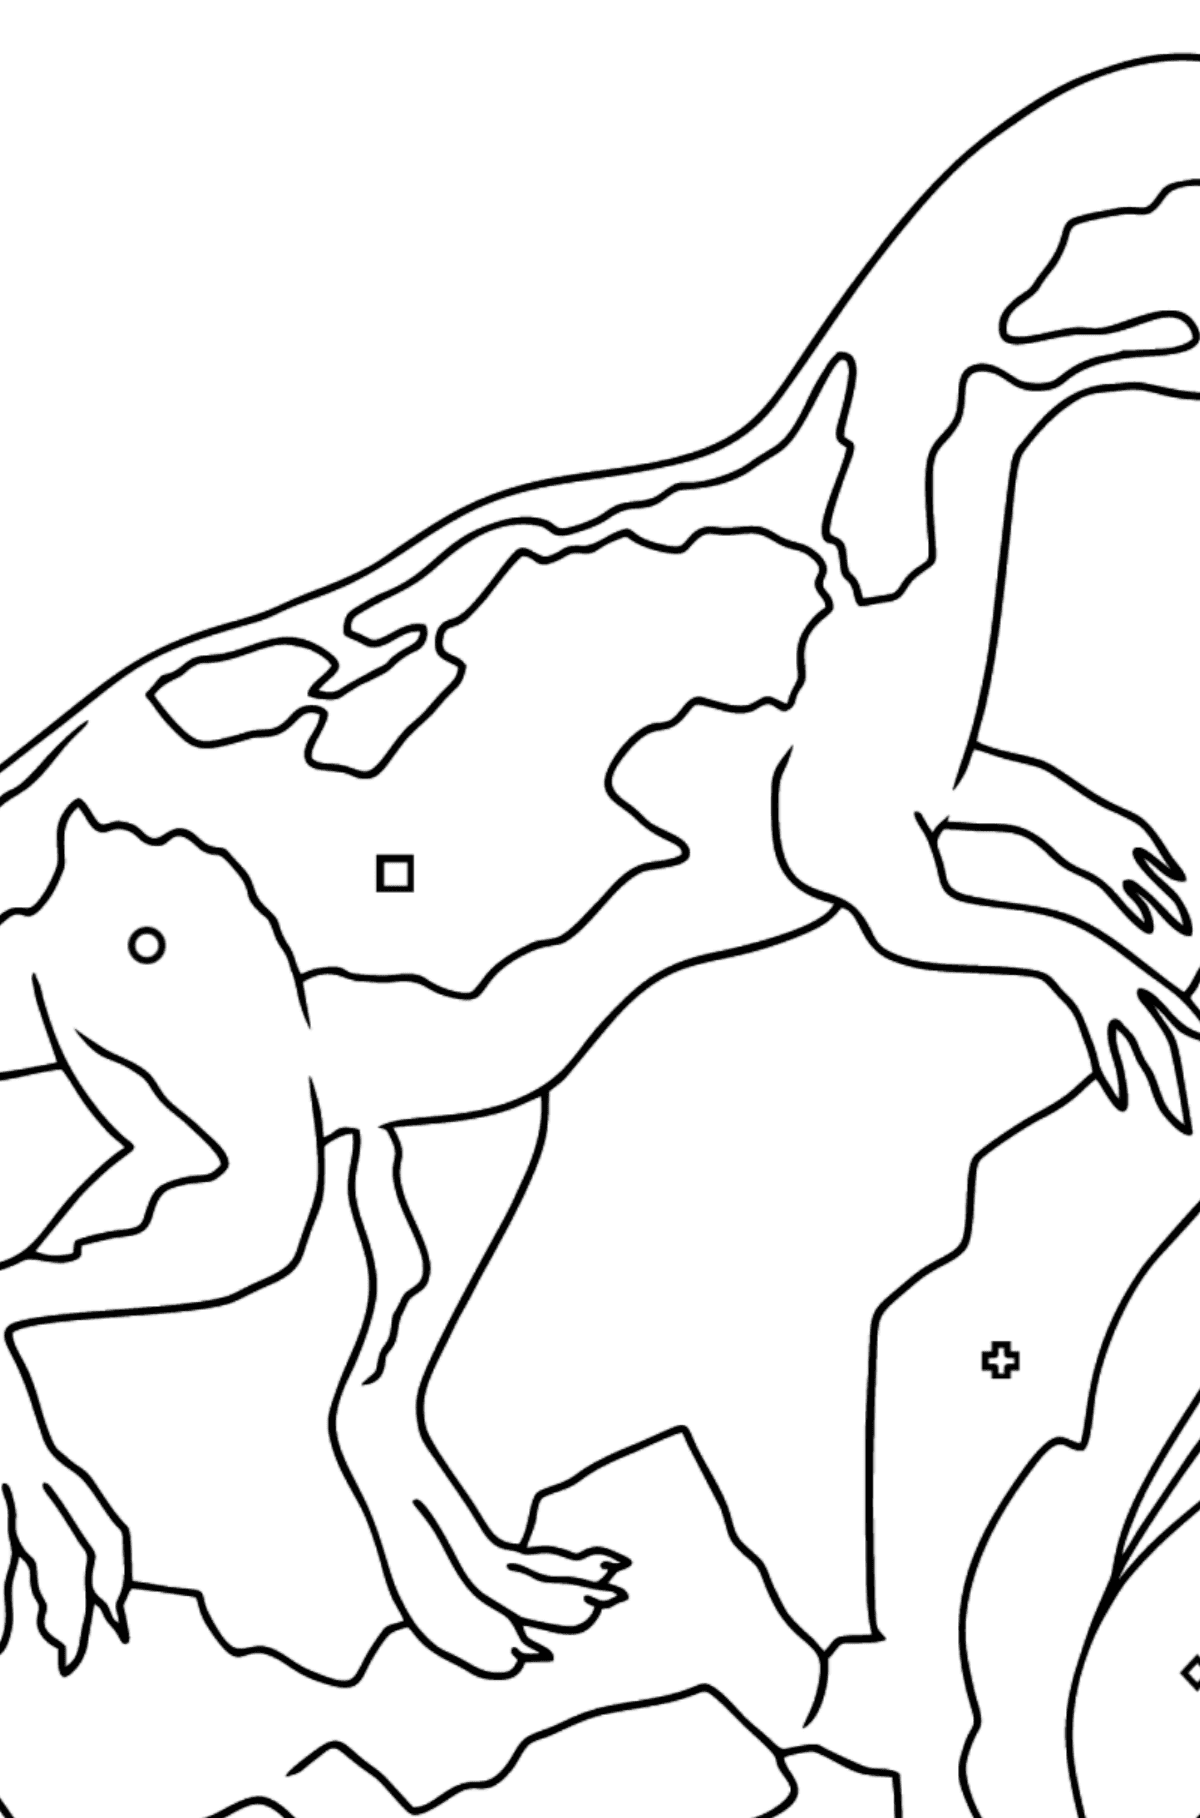 Coloring Page - A Dinosaur is Looking for Food - Coloring by Geometric Shapes for Kids